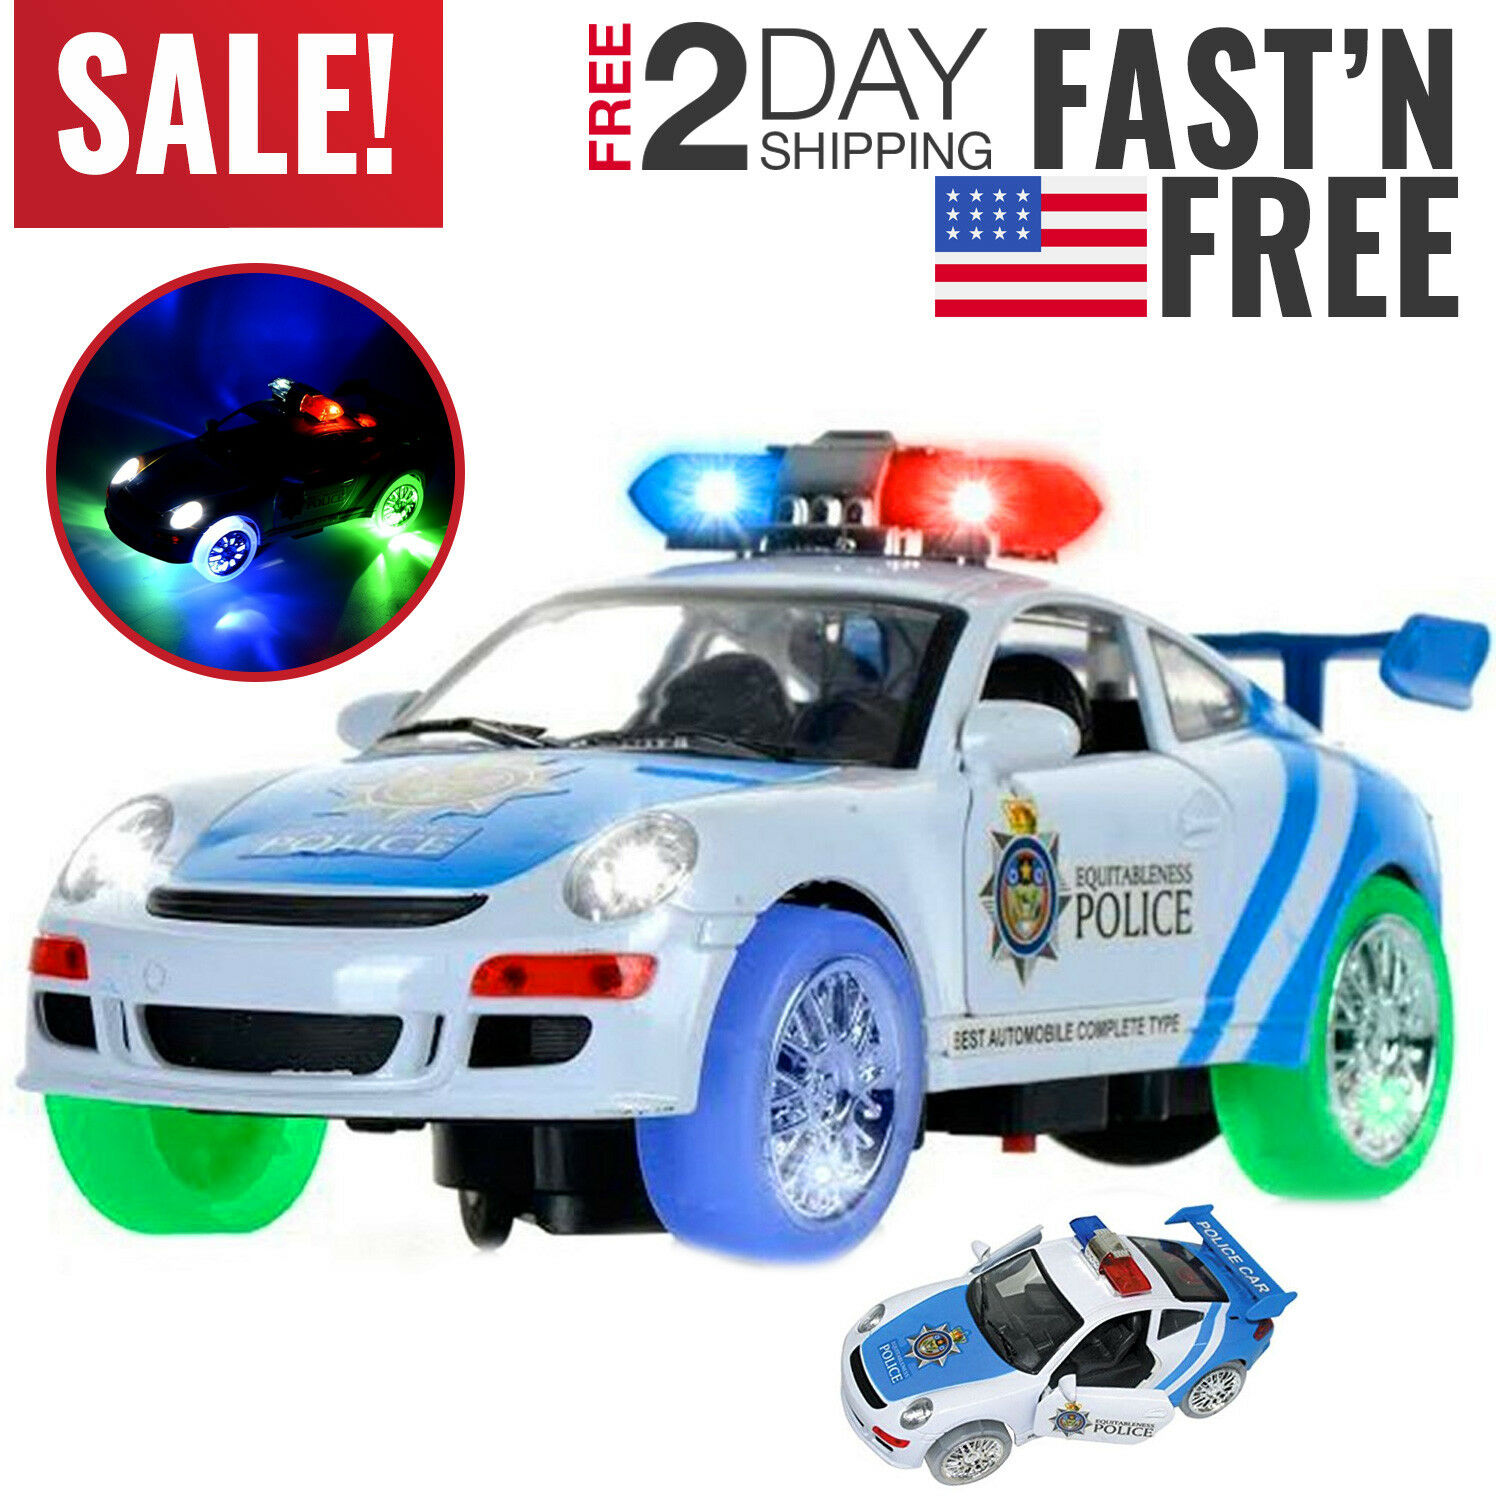 Police Toys For Boys : Toys for boys police car truck kids year old